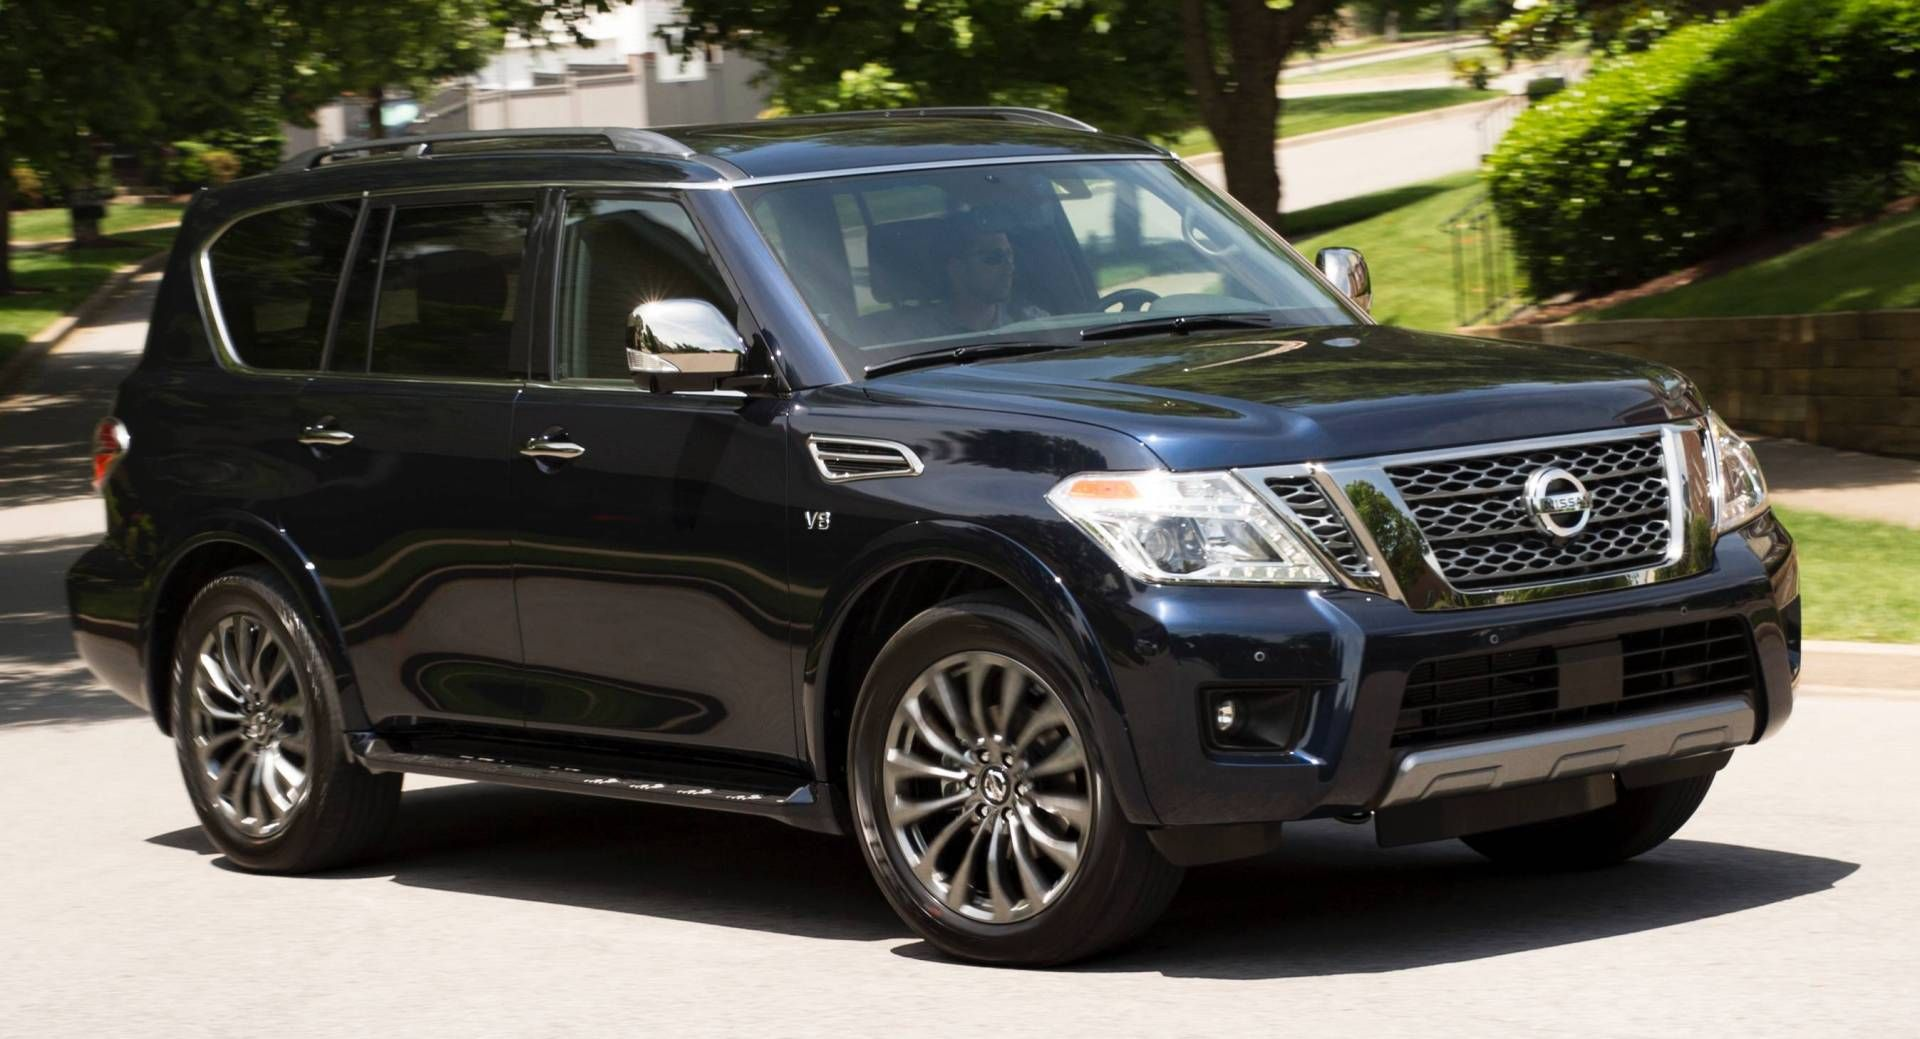 2020 Nissan Armada Stays Largely The Same Yet Costs Up To 2 340 More Nissan Nissanarmada Nissanpatrol Prices Suv Usa Nissan Armada Nissan Nissan Patrol